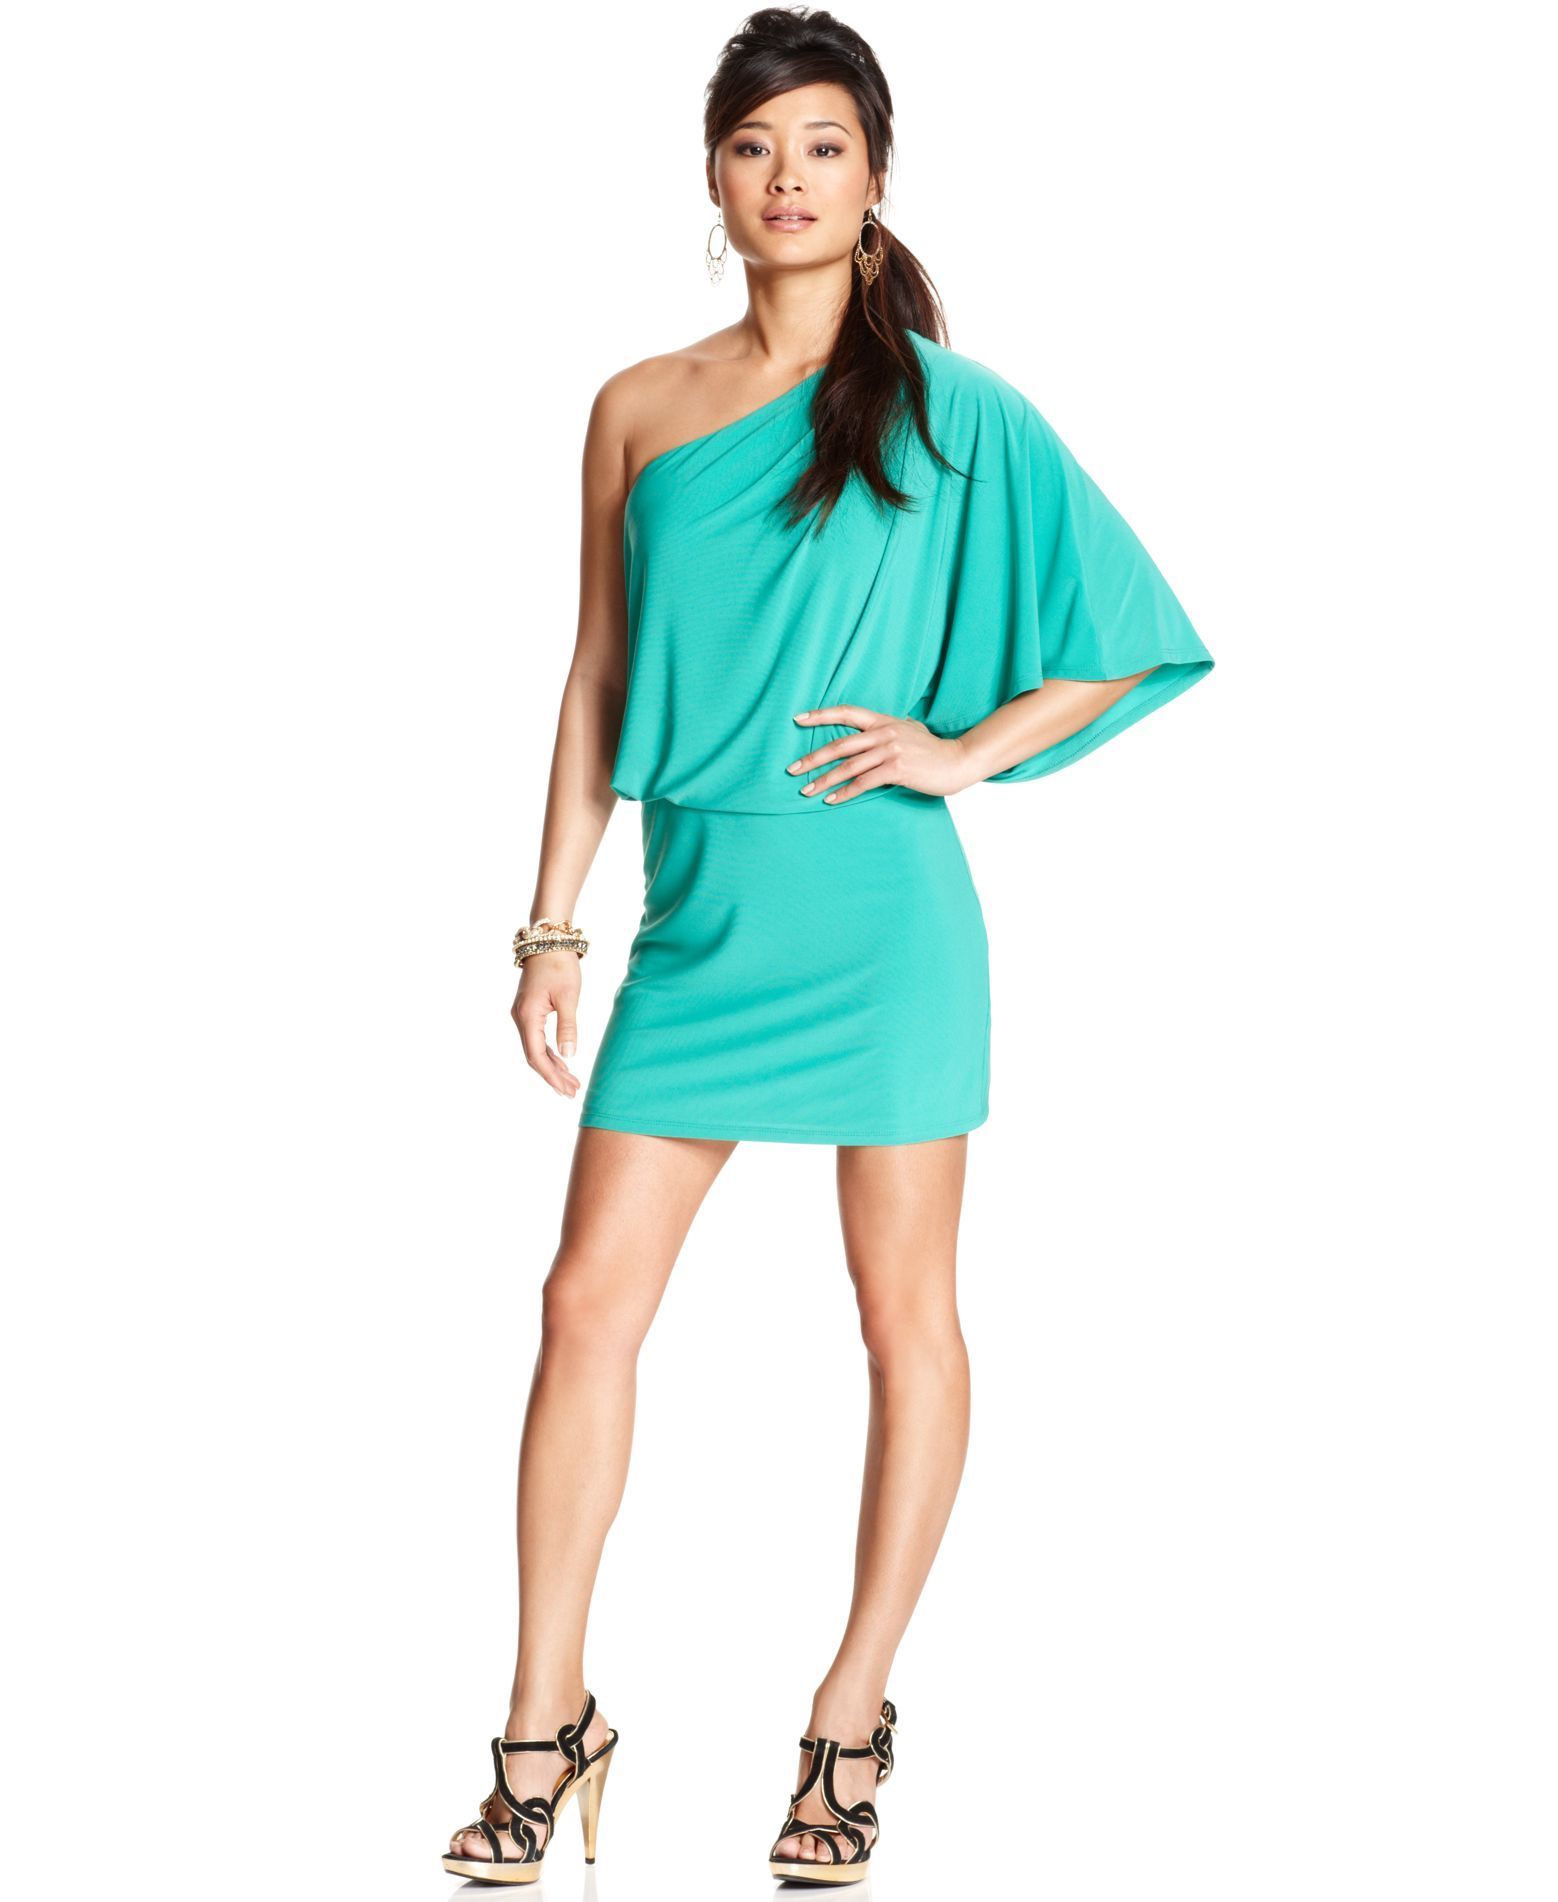 Jessica Simpson One-Shoulder Party Dress | Products | Pinterest ...